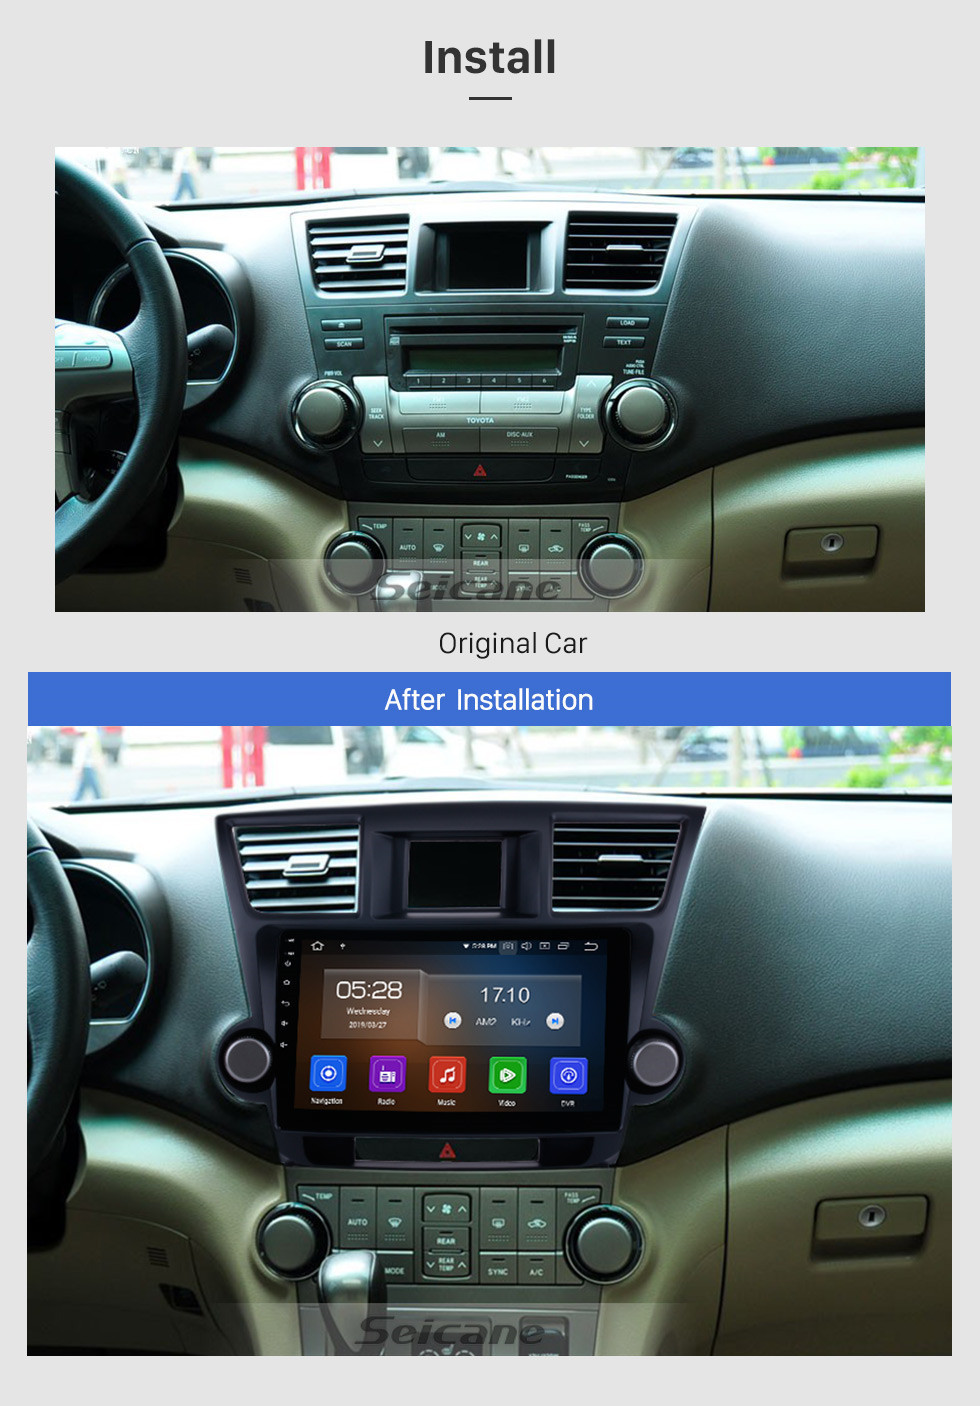 Seicane 10.1 inch Pure Android 10.0 For 2008-2014 Toyota Highlander Radio Removal with Sat Nav Car Audio System 1024*600 Multi-touch Capacitive Screen Mirror Link OBD2 3G WiFi AUX10